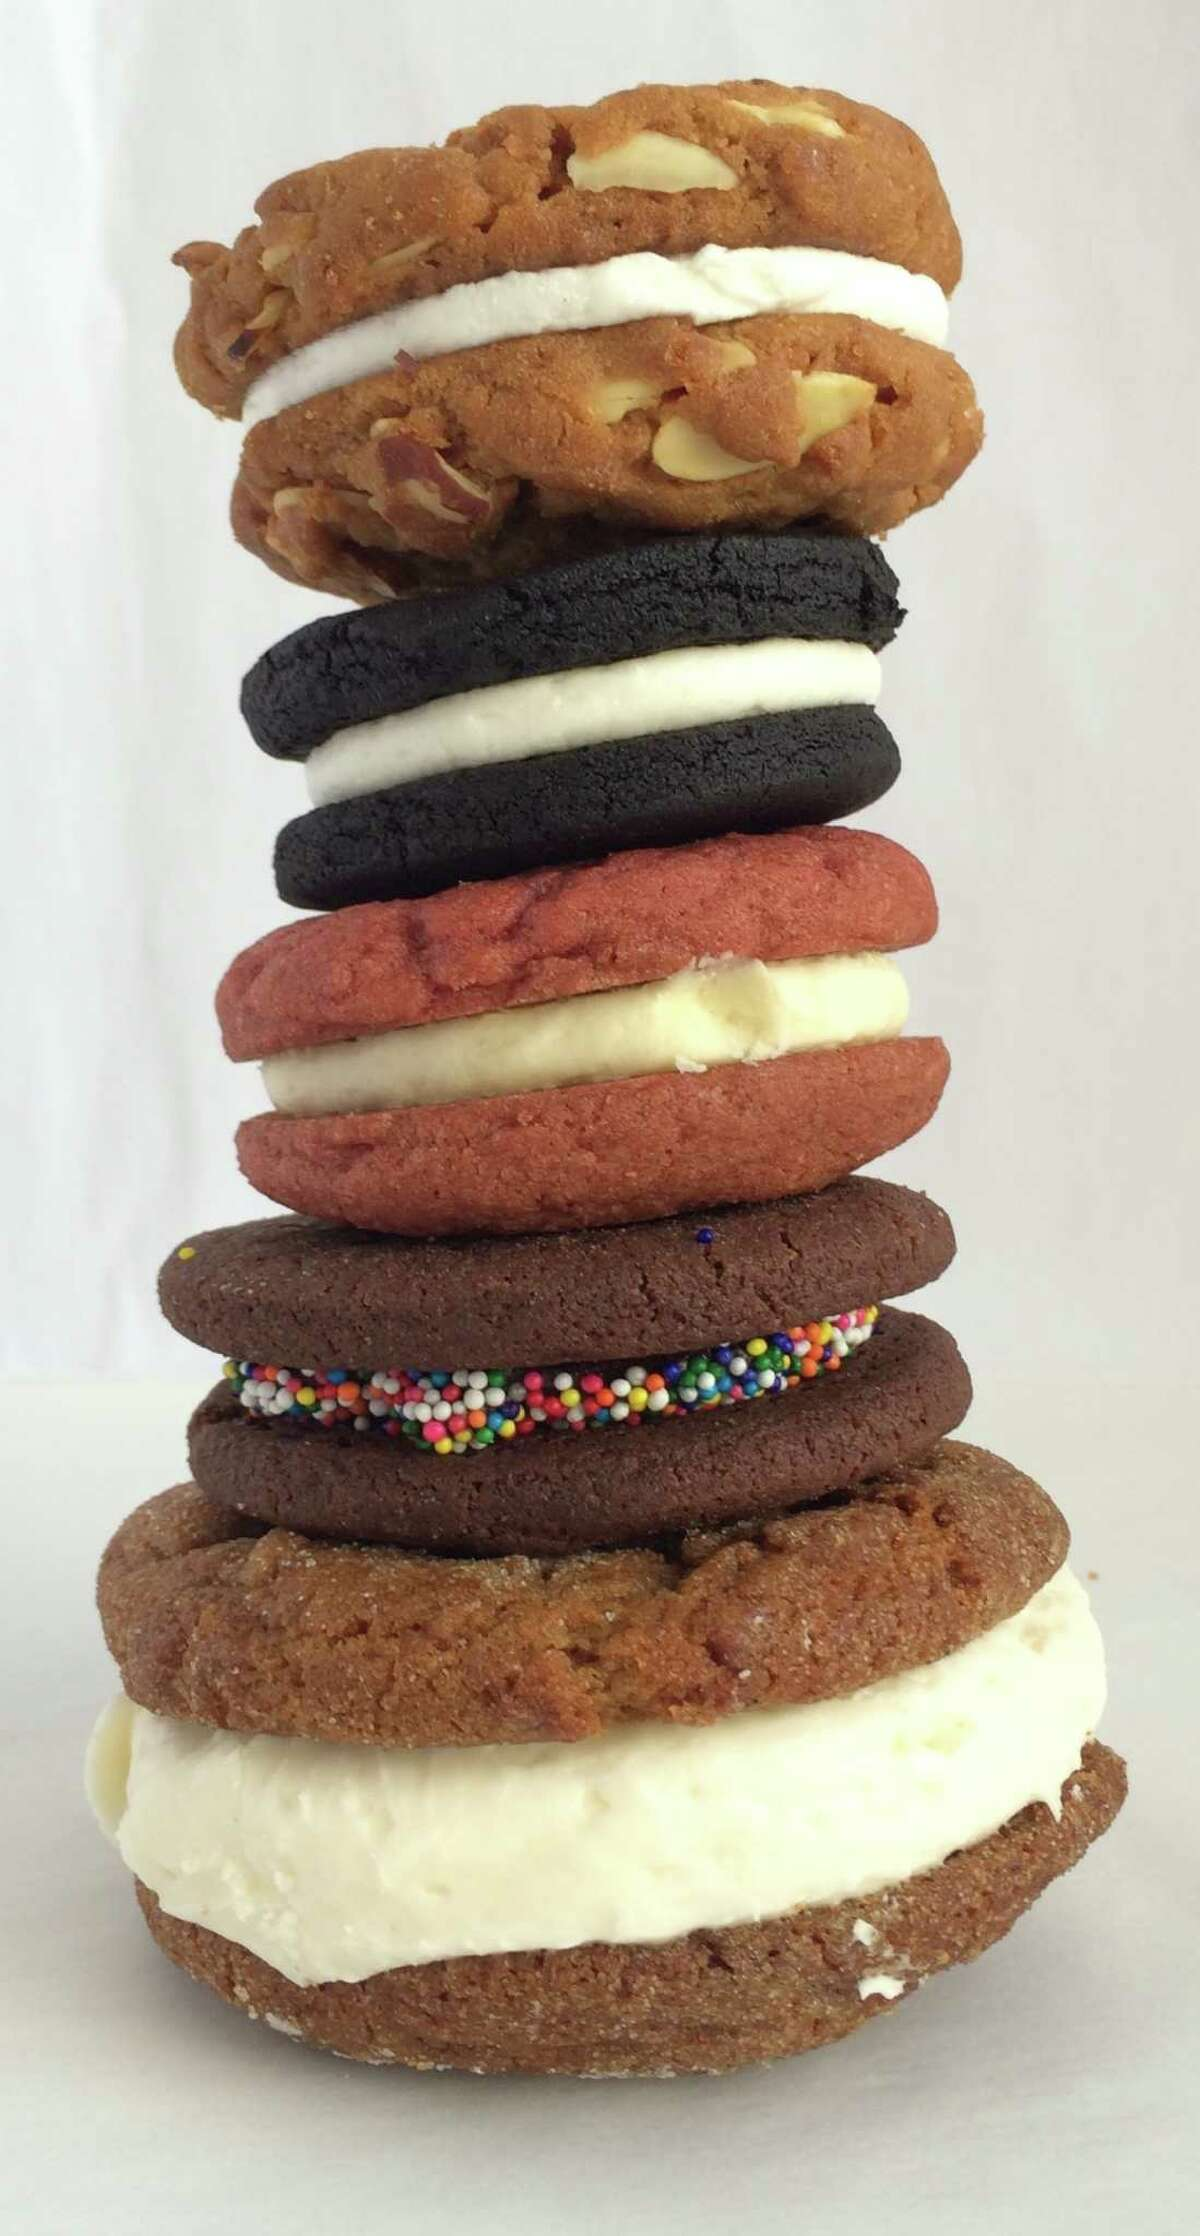 Assorted sandwich cookies from Pinkie's Bakery, Batter Bakery, Natty Cakes and Black Jet Bakery